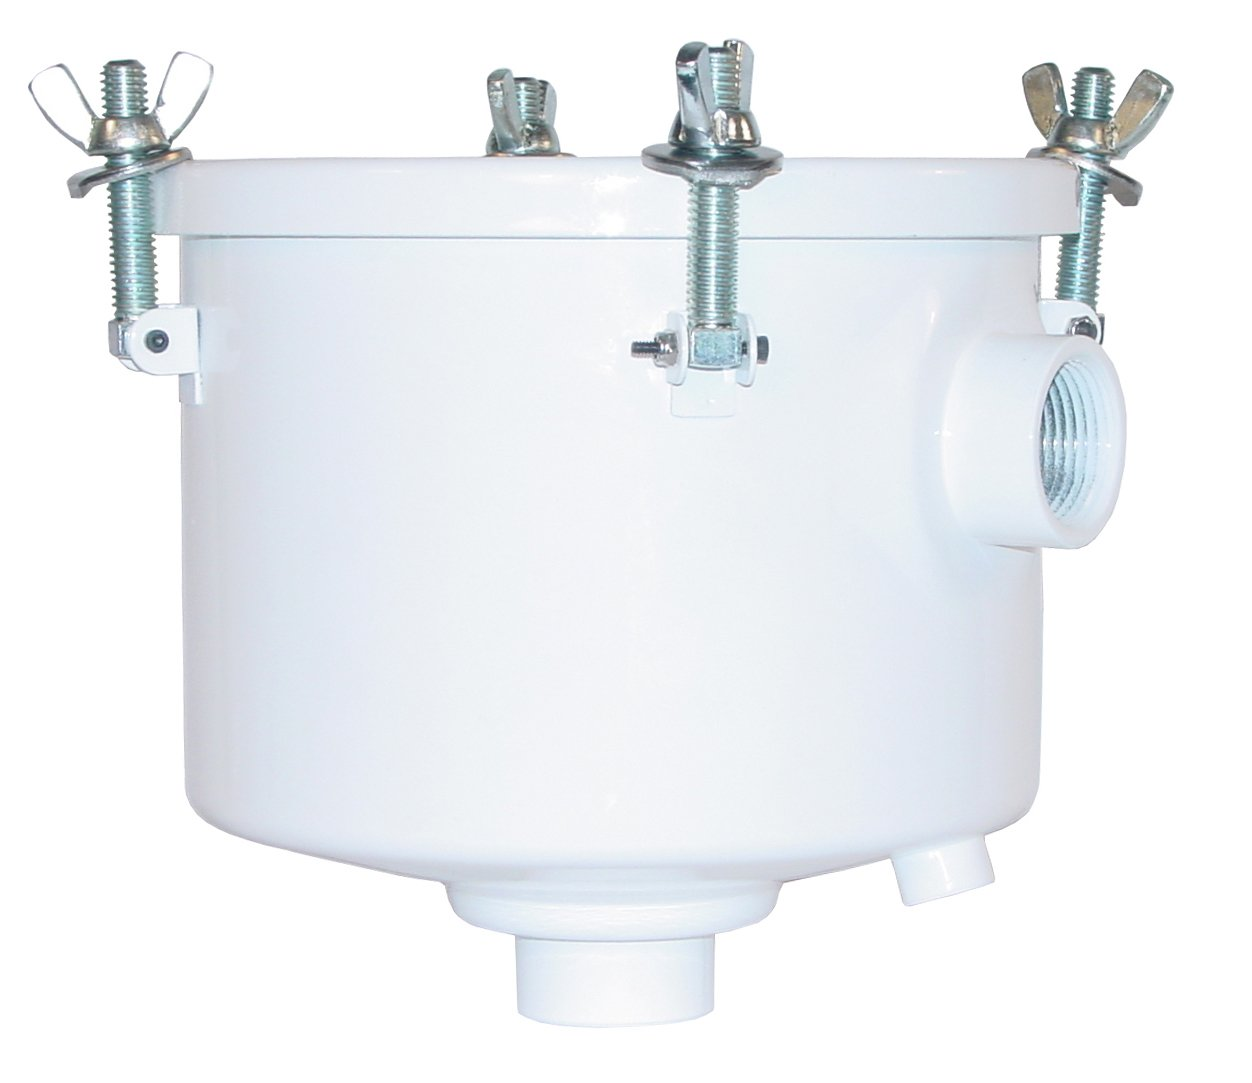 1-1//2 FPT Inlet//Outlet 50 SCFM 7-5//16 Diameter 6-3//4 Height Made in the USA Solberg HDL-PSG848-150HC Oil Mist Discharge Filter for Vacuum Pump